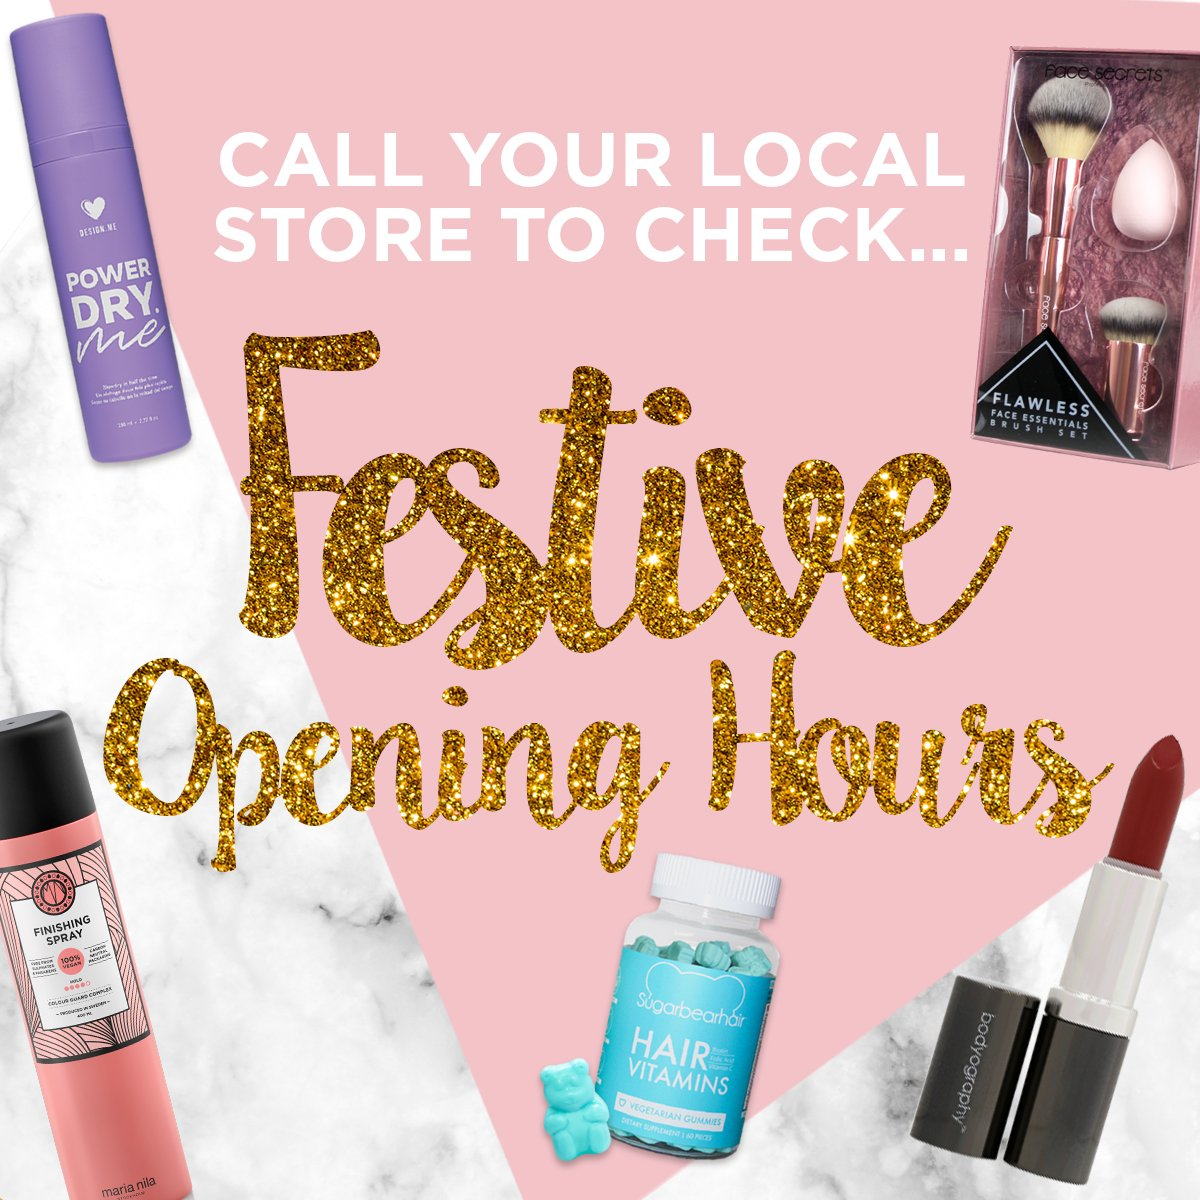 🎅 🎄 ❄️ ☃️ 🎁  Merry Christmas! Don't forget to contact your local stores to check opening hours before travelling 🎅 🎄 ❄️ ☃️ 🎁 https://t.co/pCCyRGxhLJ